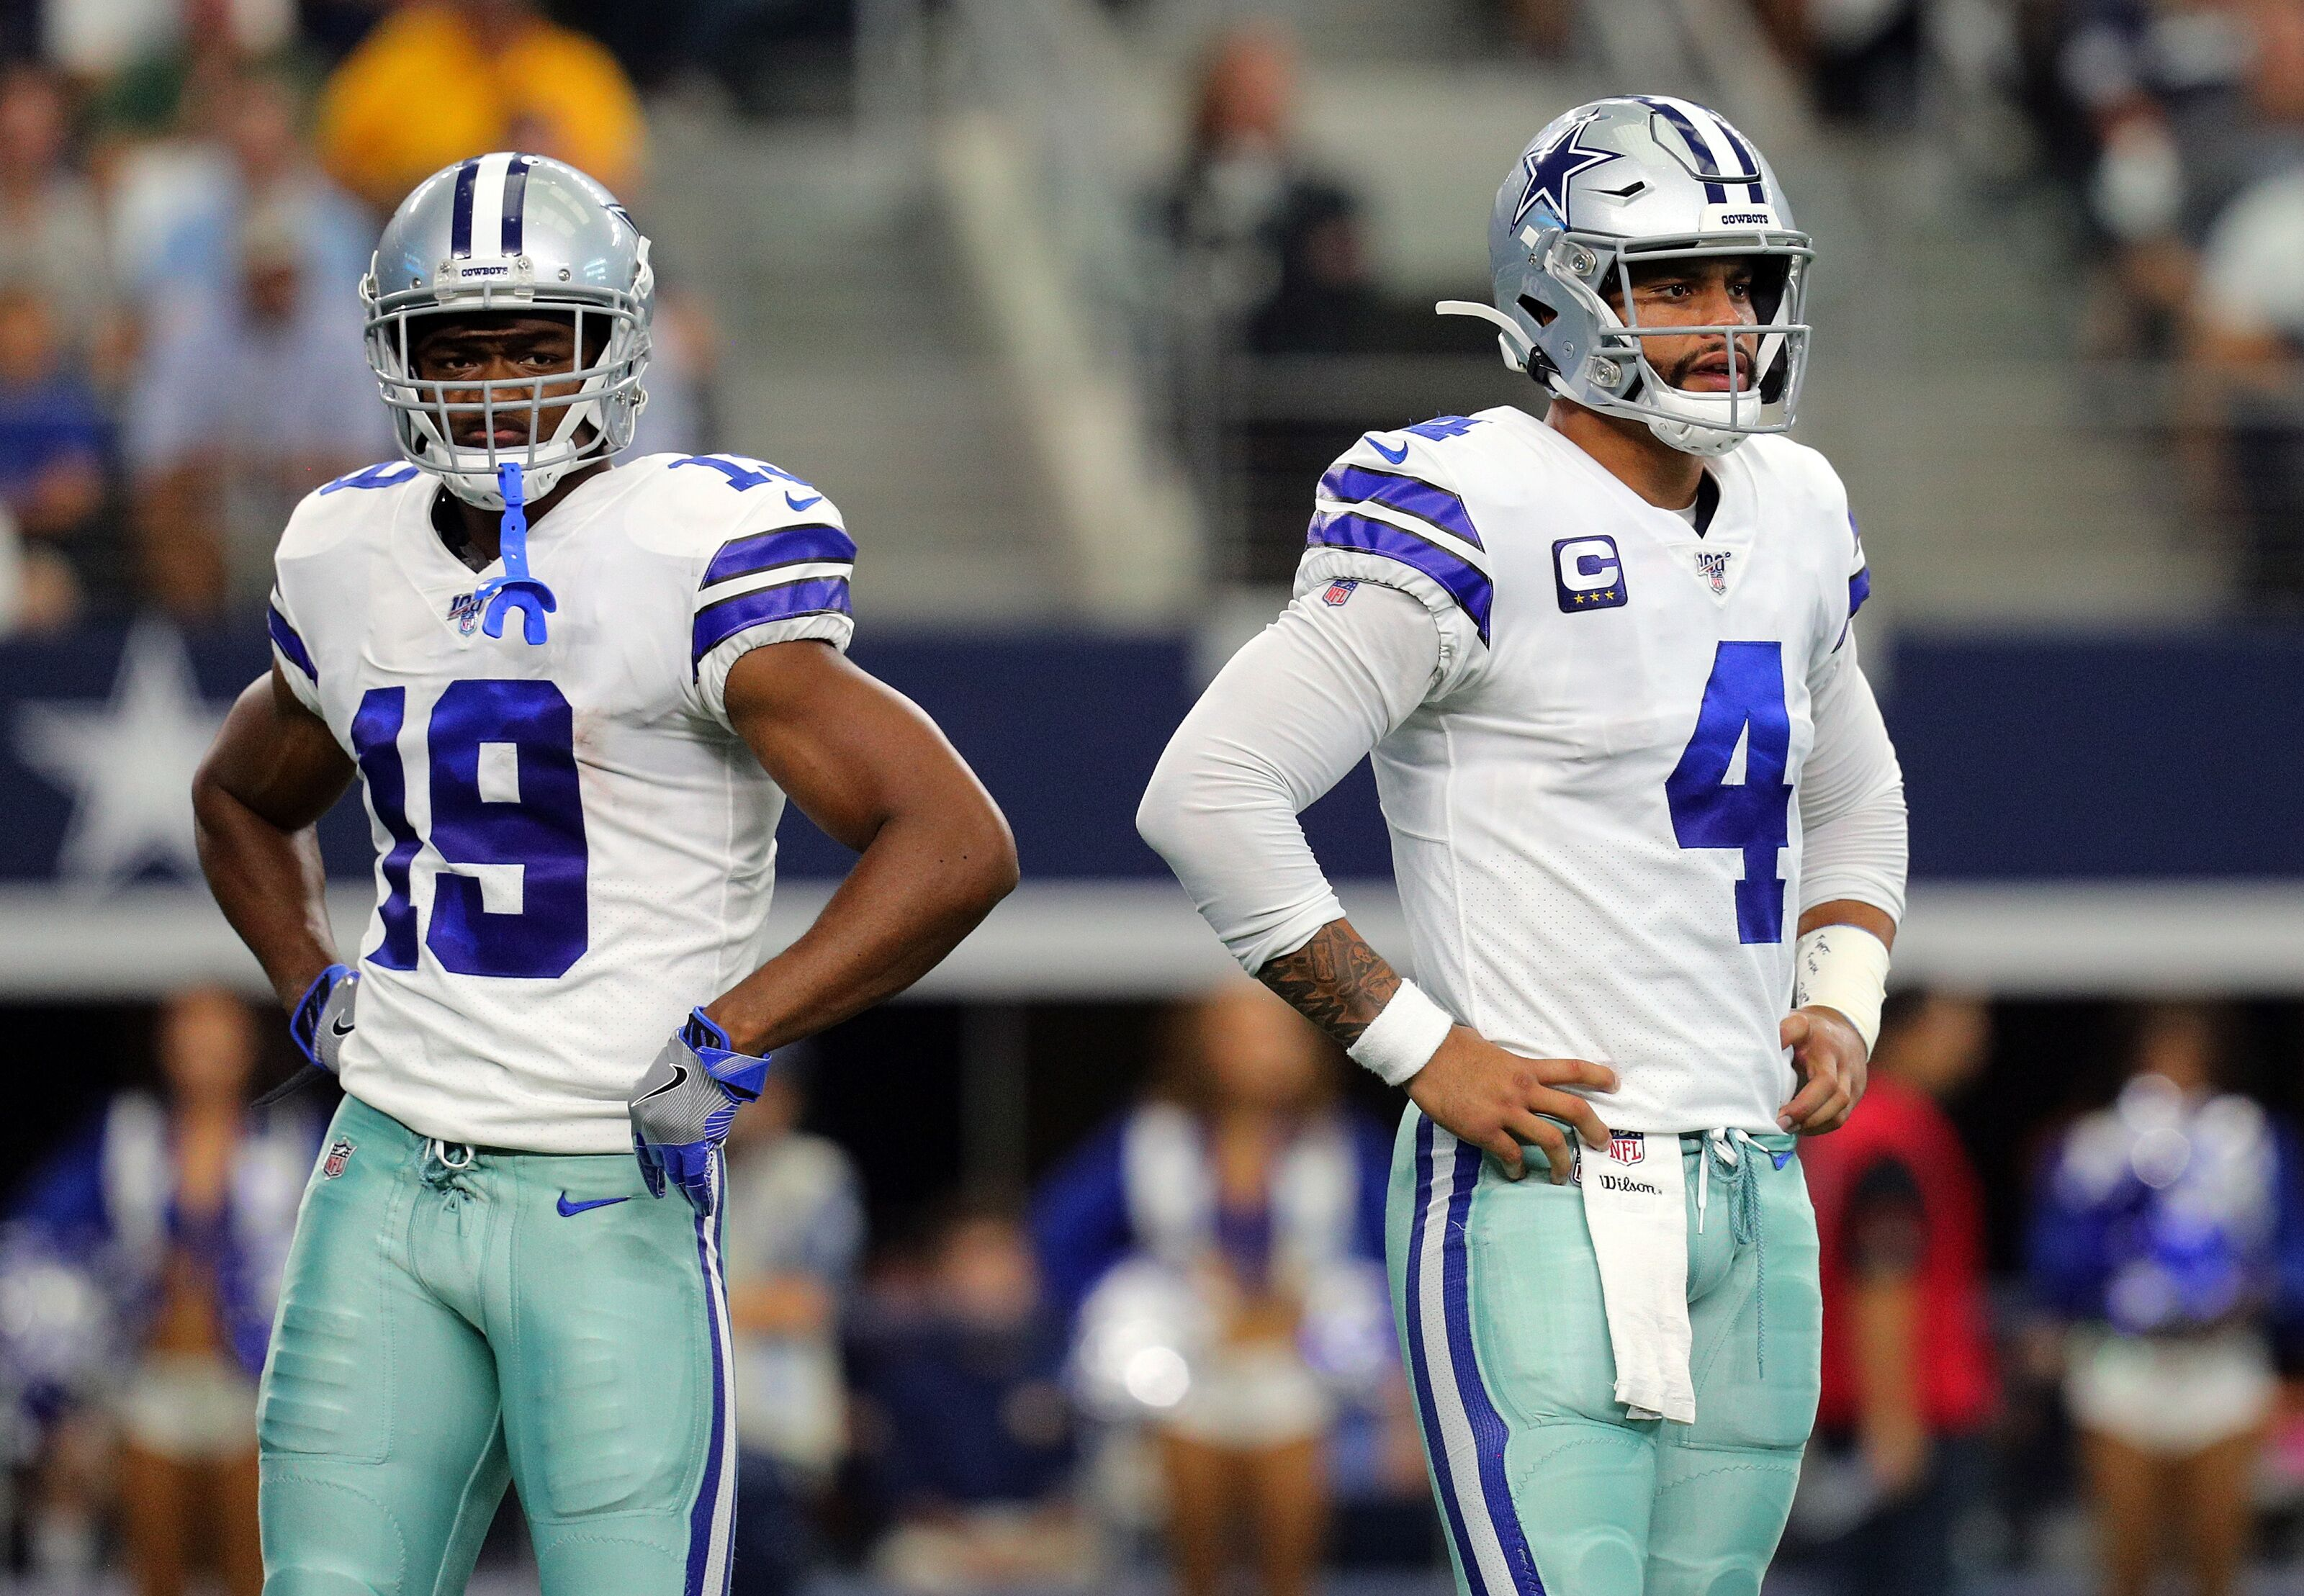 Dallas Cowboys can't afford contracts to bust the salary cap